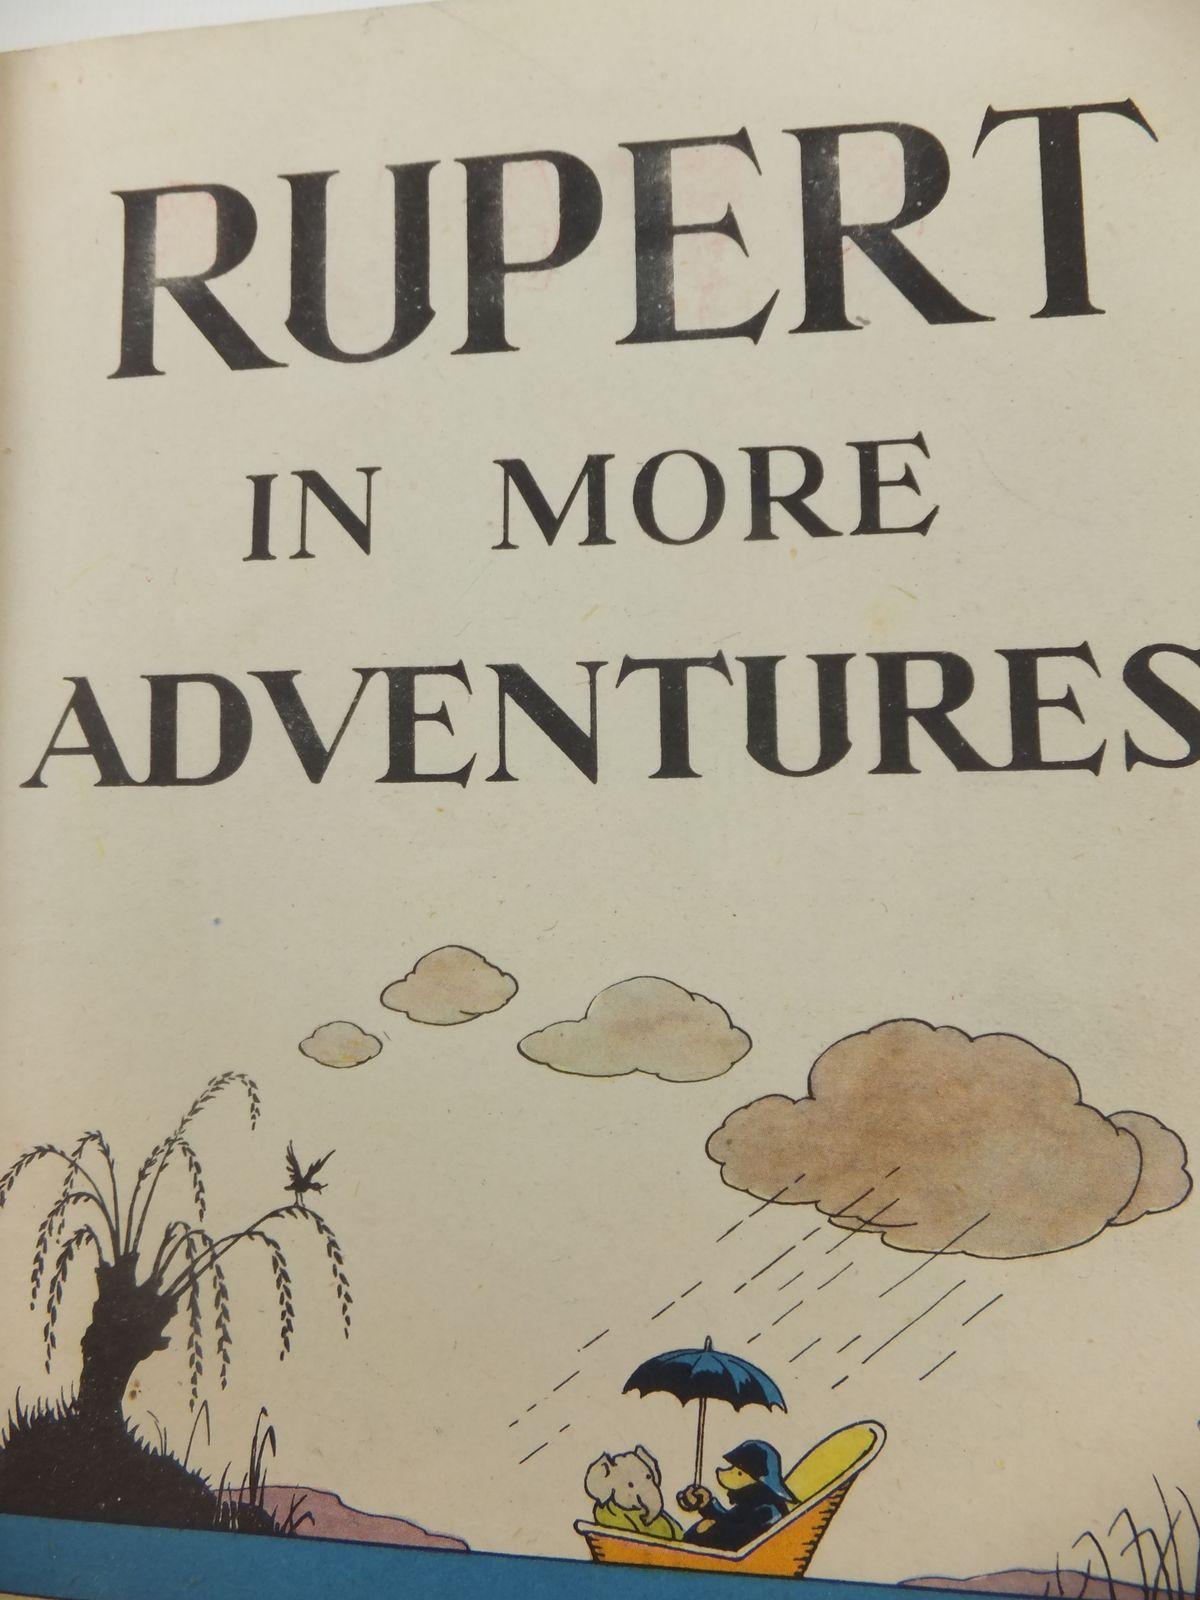 Photo of RUPERT ANNUAL 1944 - RUPERT IN MORE ADVENTURES written by Bestall, Alfred illustrated by Bestall, Alfred published by Daily Express (STOCK CODE: 2122142)  for sale by Stella & Rose's Books